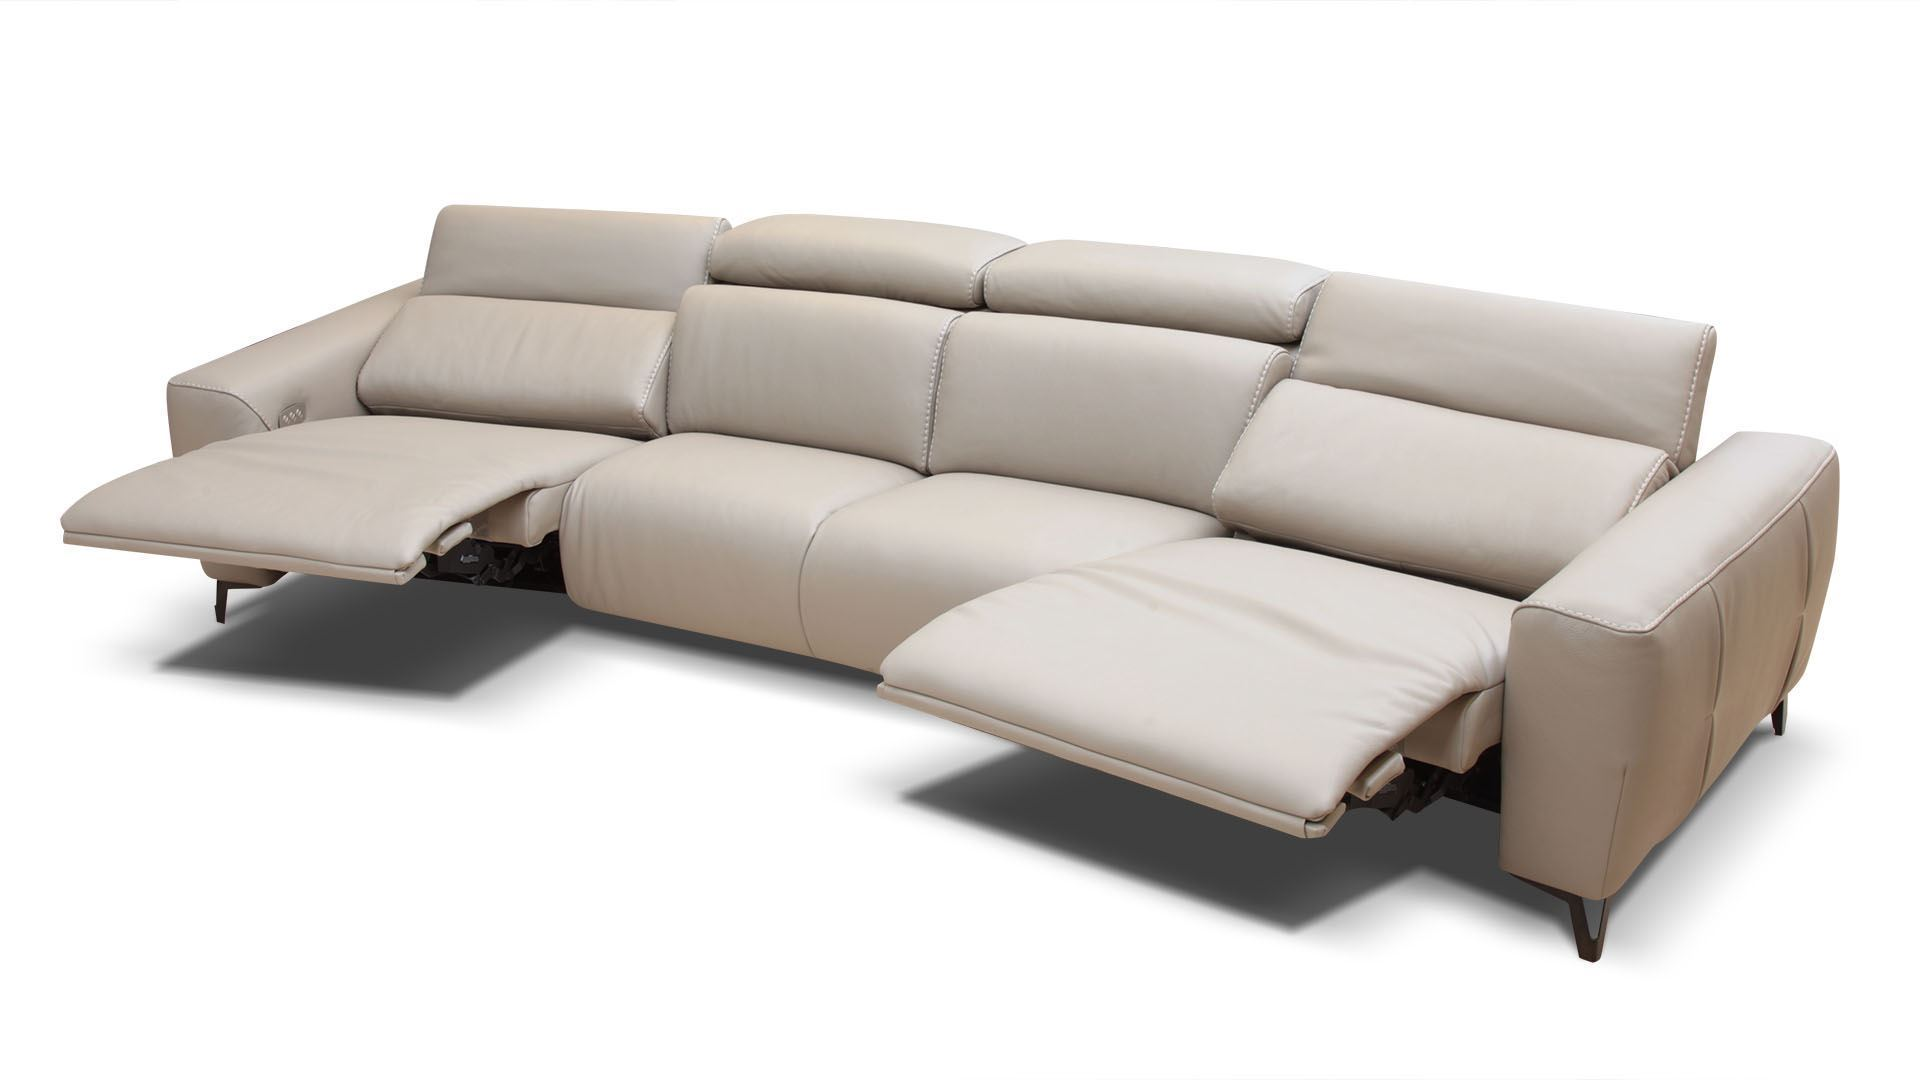 Bracci Zeus Curved Reclining Sectional 149